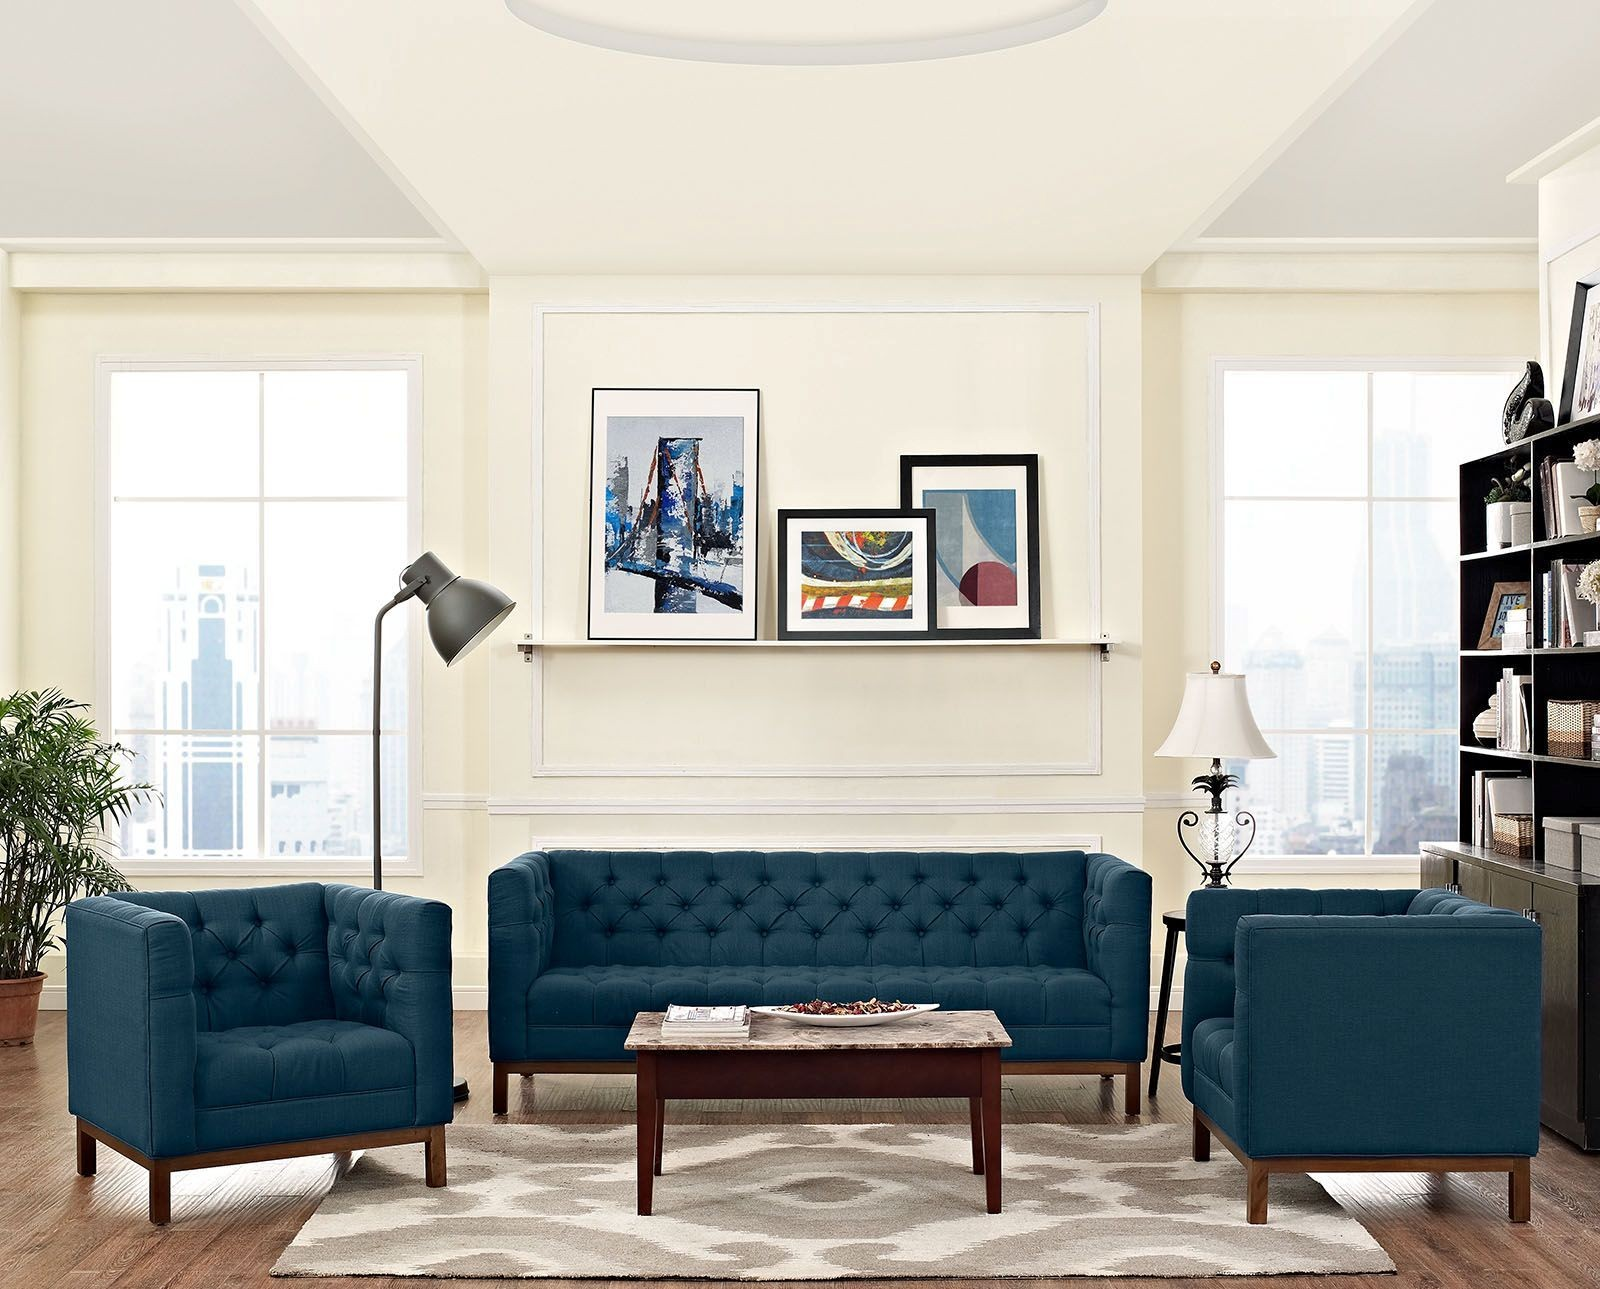 Panache Azure 3 Piece Upholstered Living Room Set From Renegade Coleman Furniture